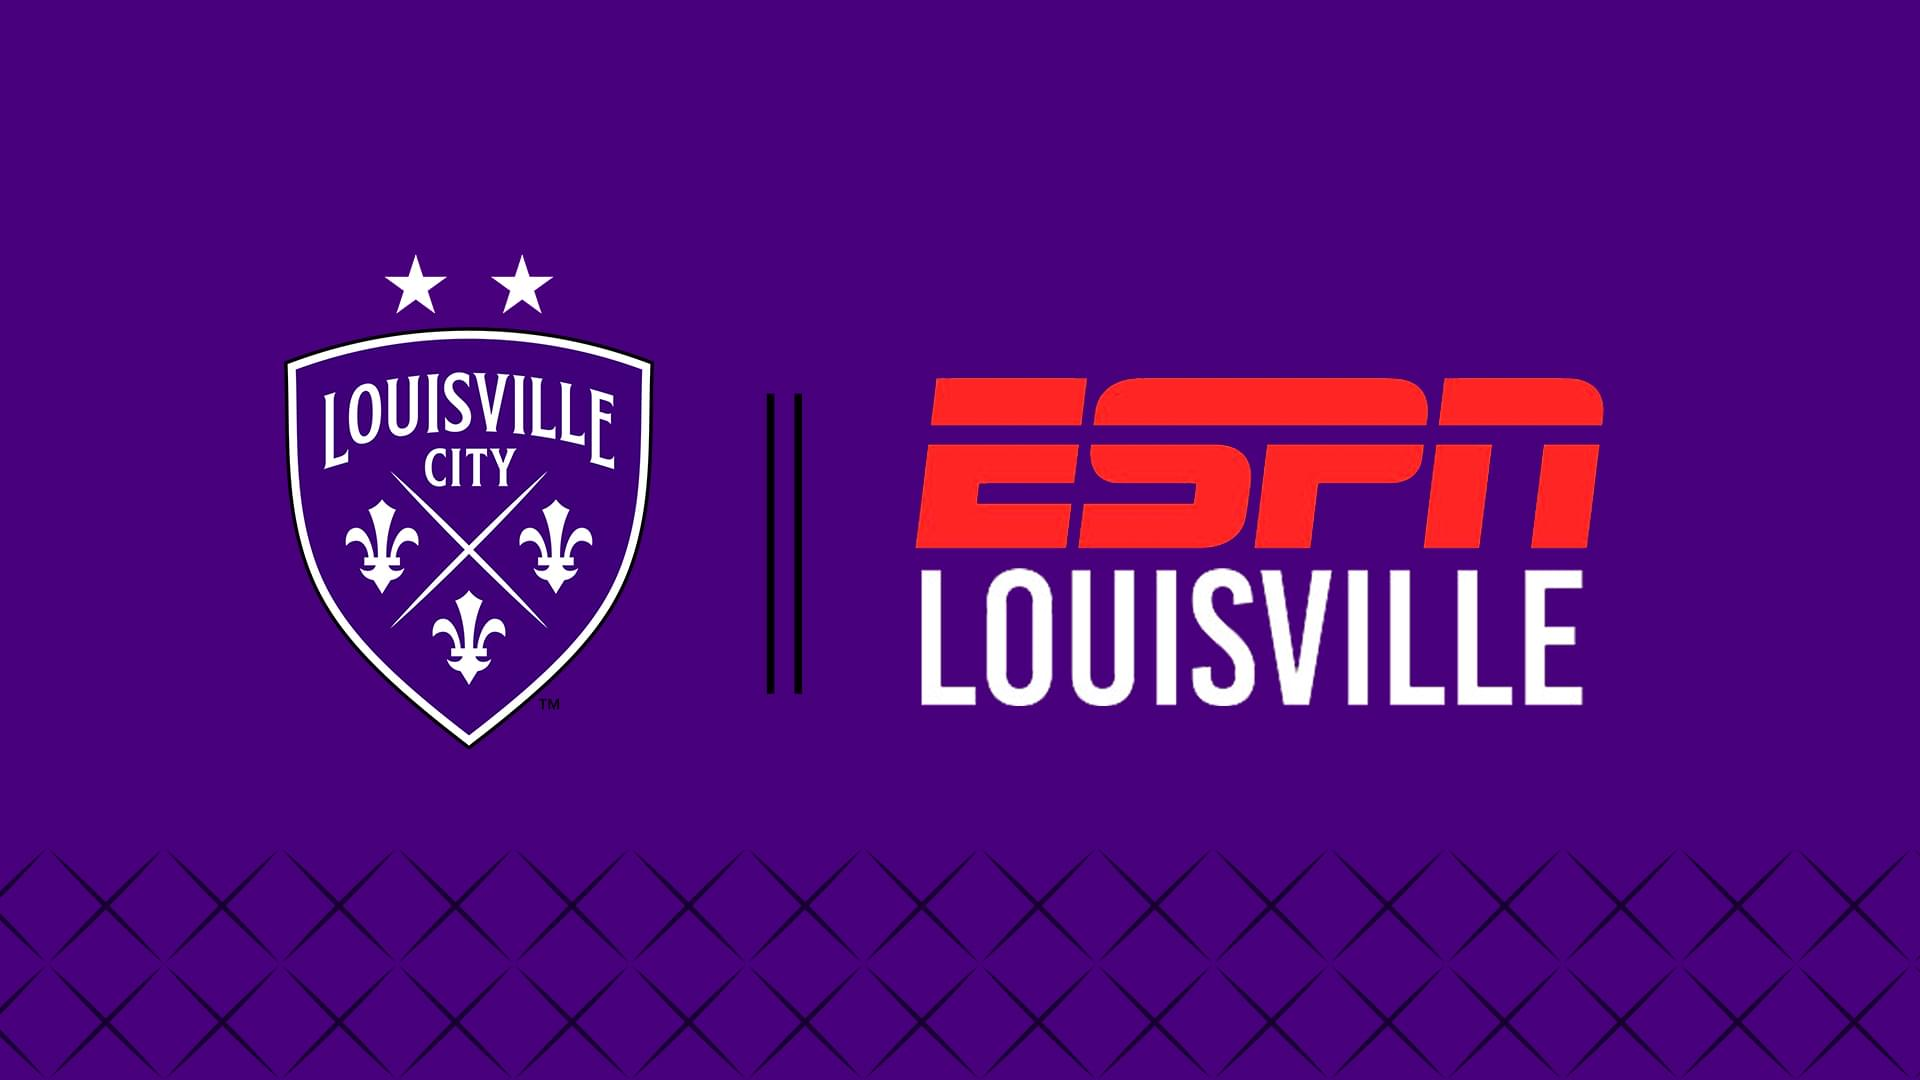 ESPN LOUISVILLE TO SERVE AS LOUCITY'S RADIO HOME IN 2021